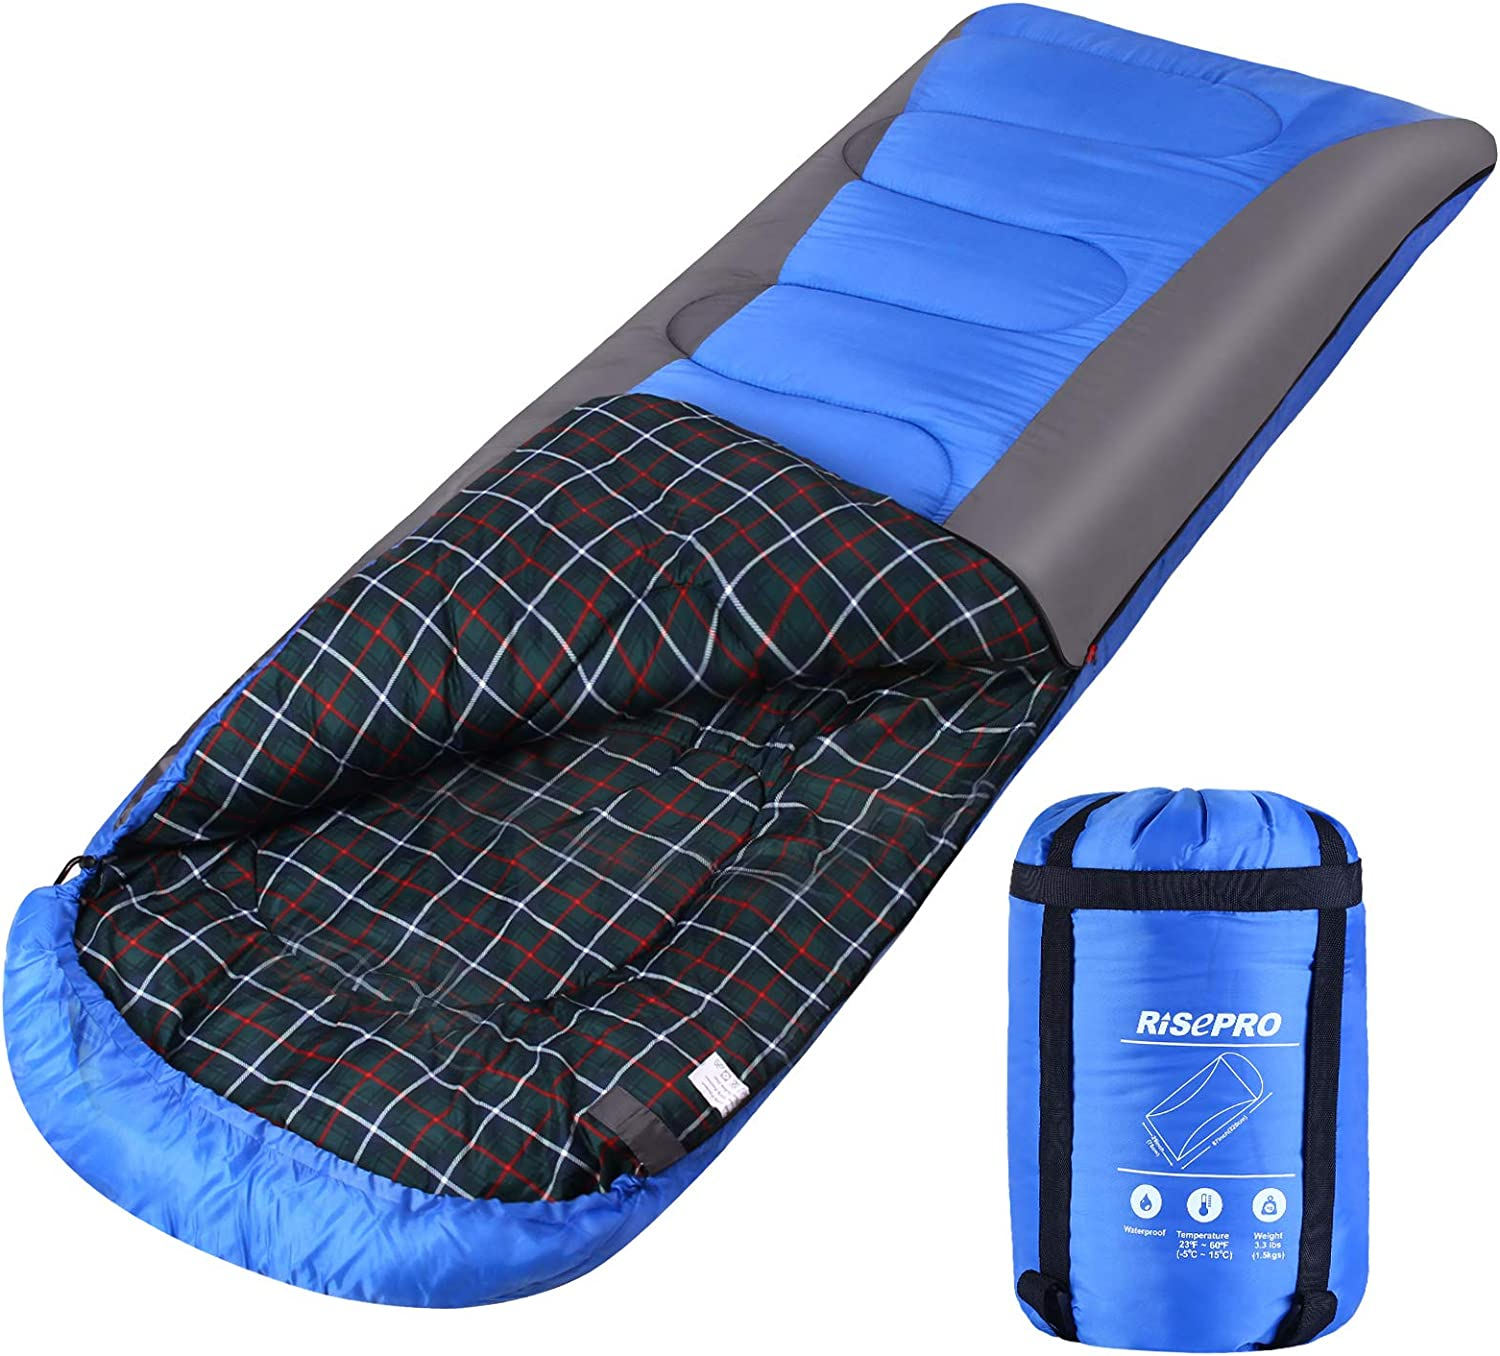 30°F//-1°C Polyester Sleeping Bag Lightweight Waterproof Camping Hiking With Case